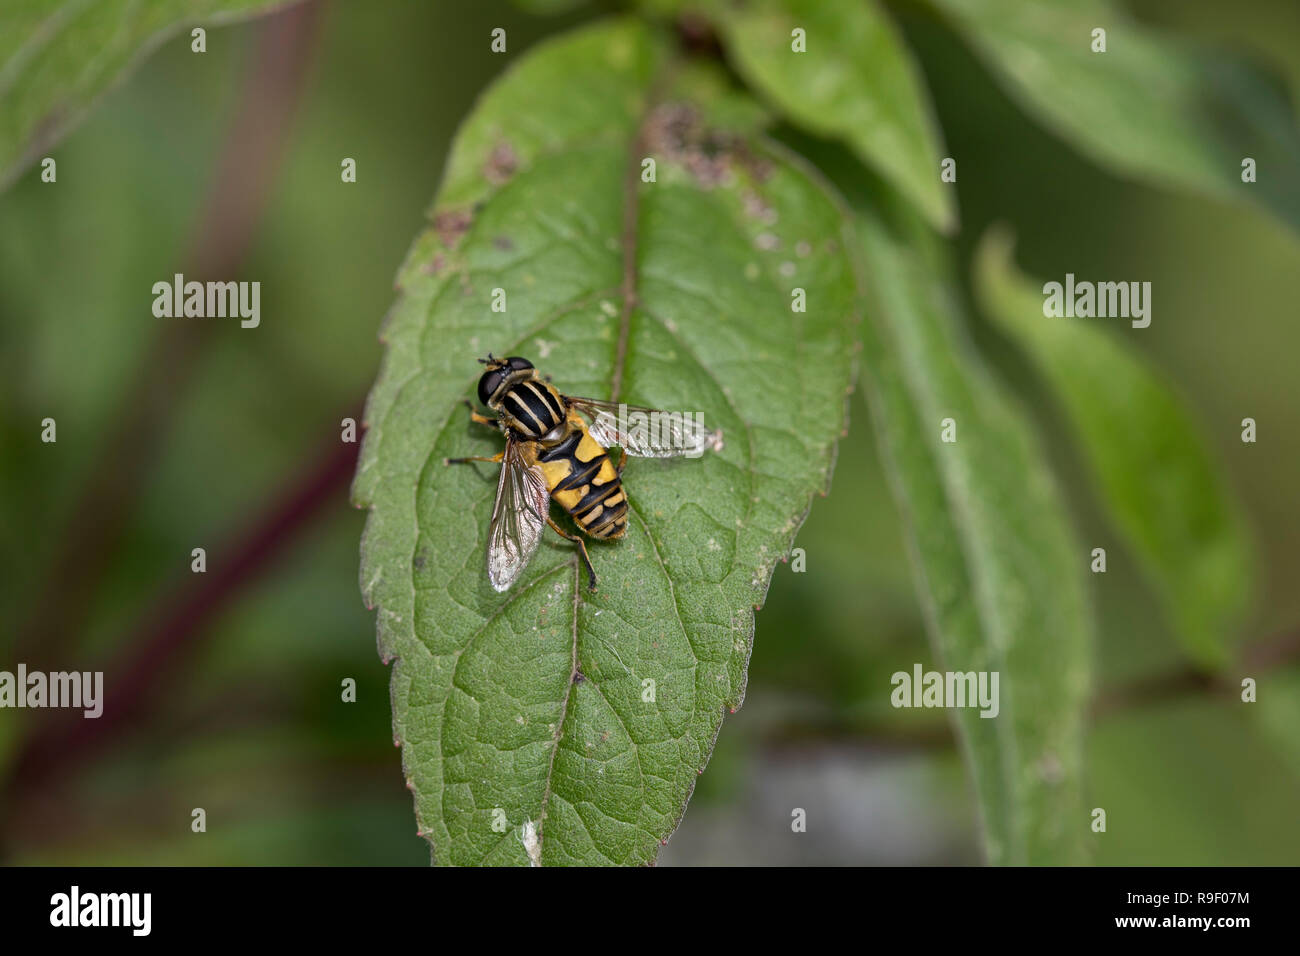 Hoverfly The Footballer; Helophilus pendulus Single on Mint Leaf Cornwall; UK - Stock Image